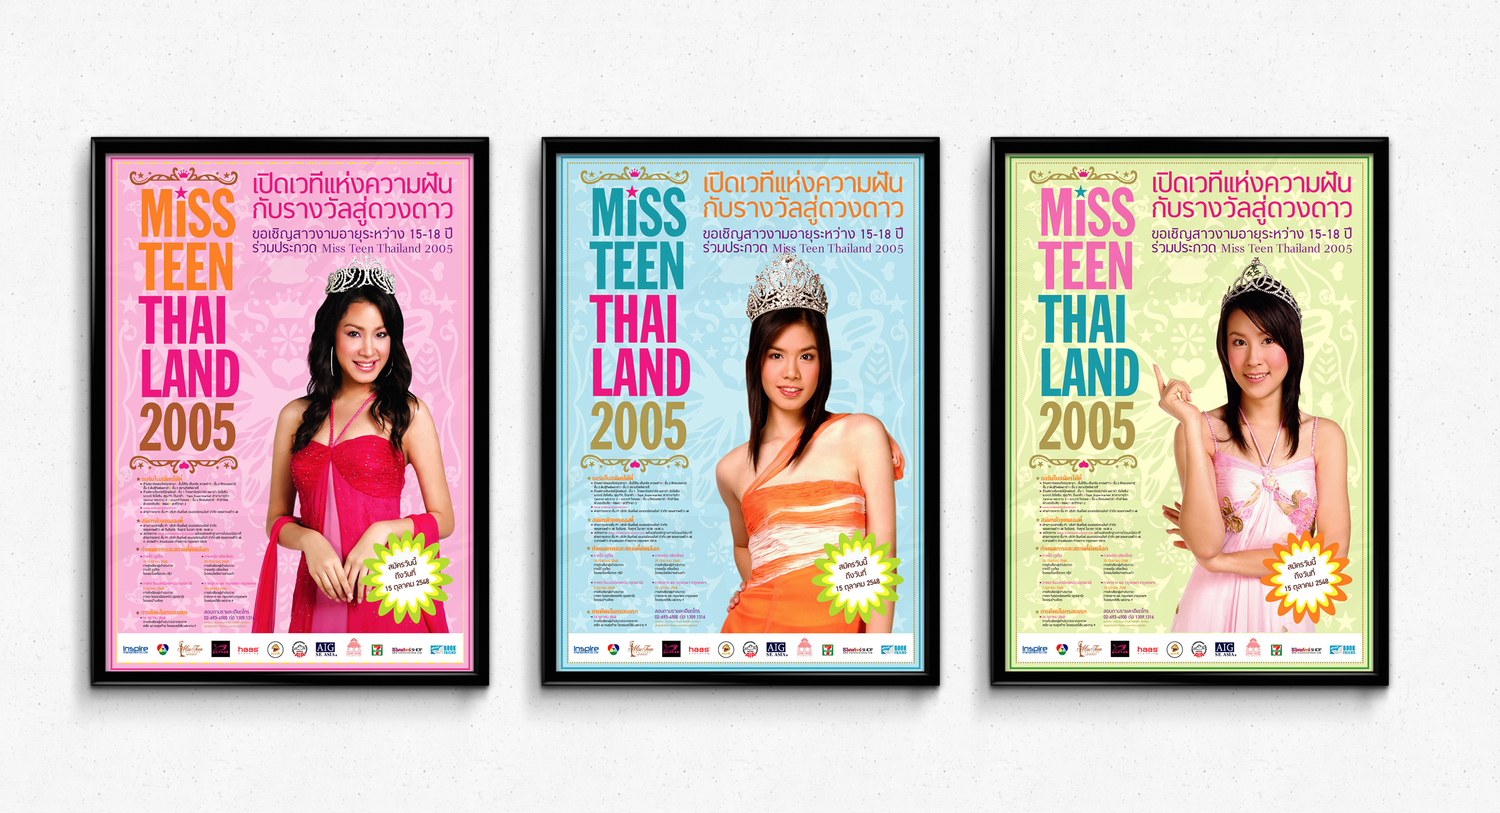 Miss Teen Thailand 2005 Promotion Posters